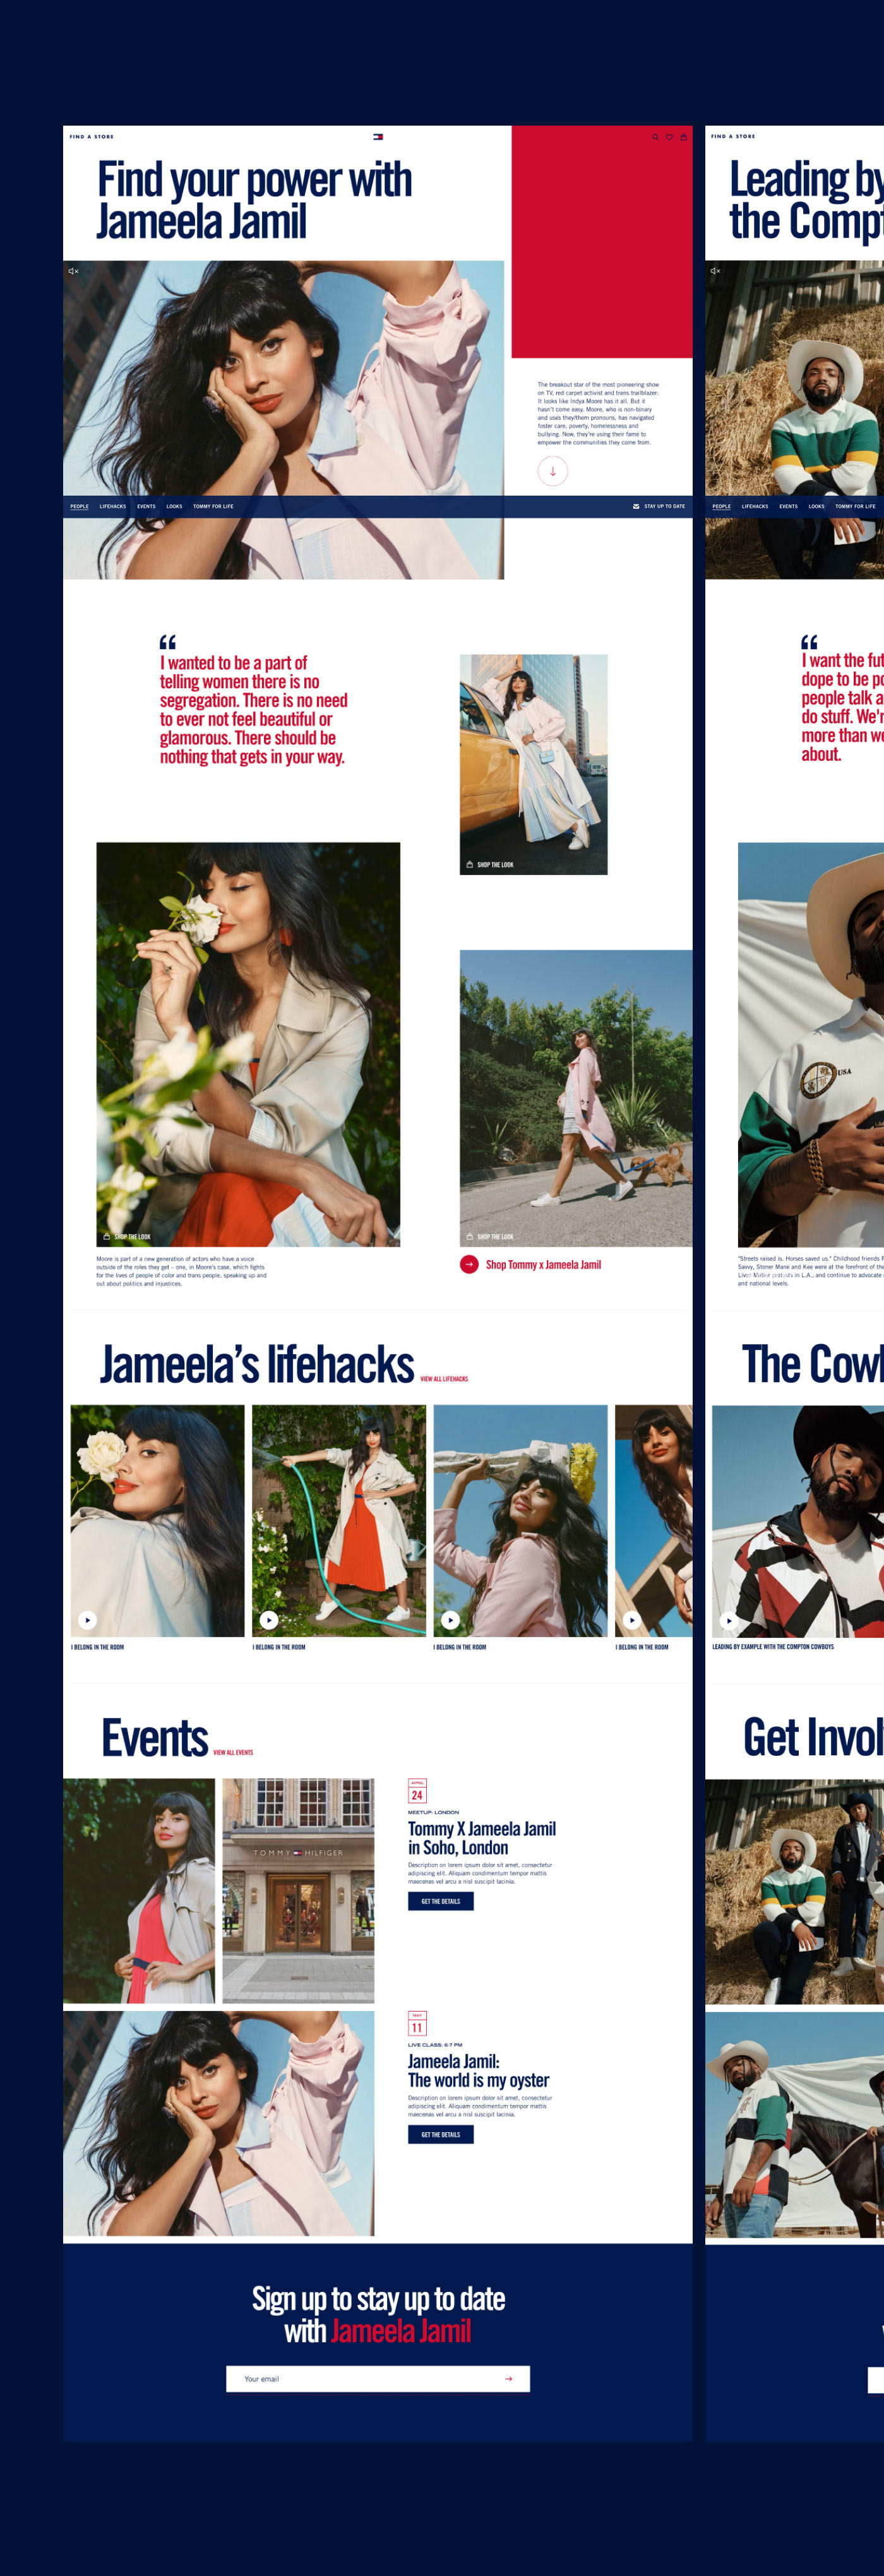 Design of an editorial page featuring Jameela Jamil and The Compton Cowboys